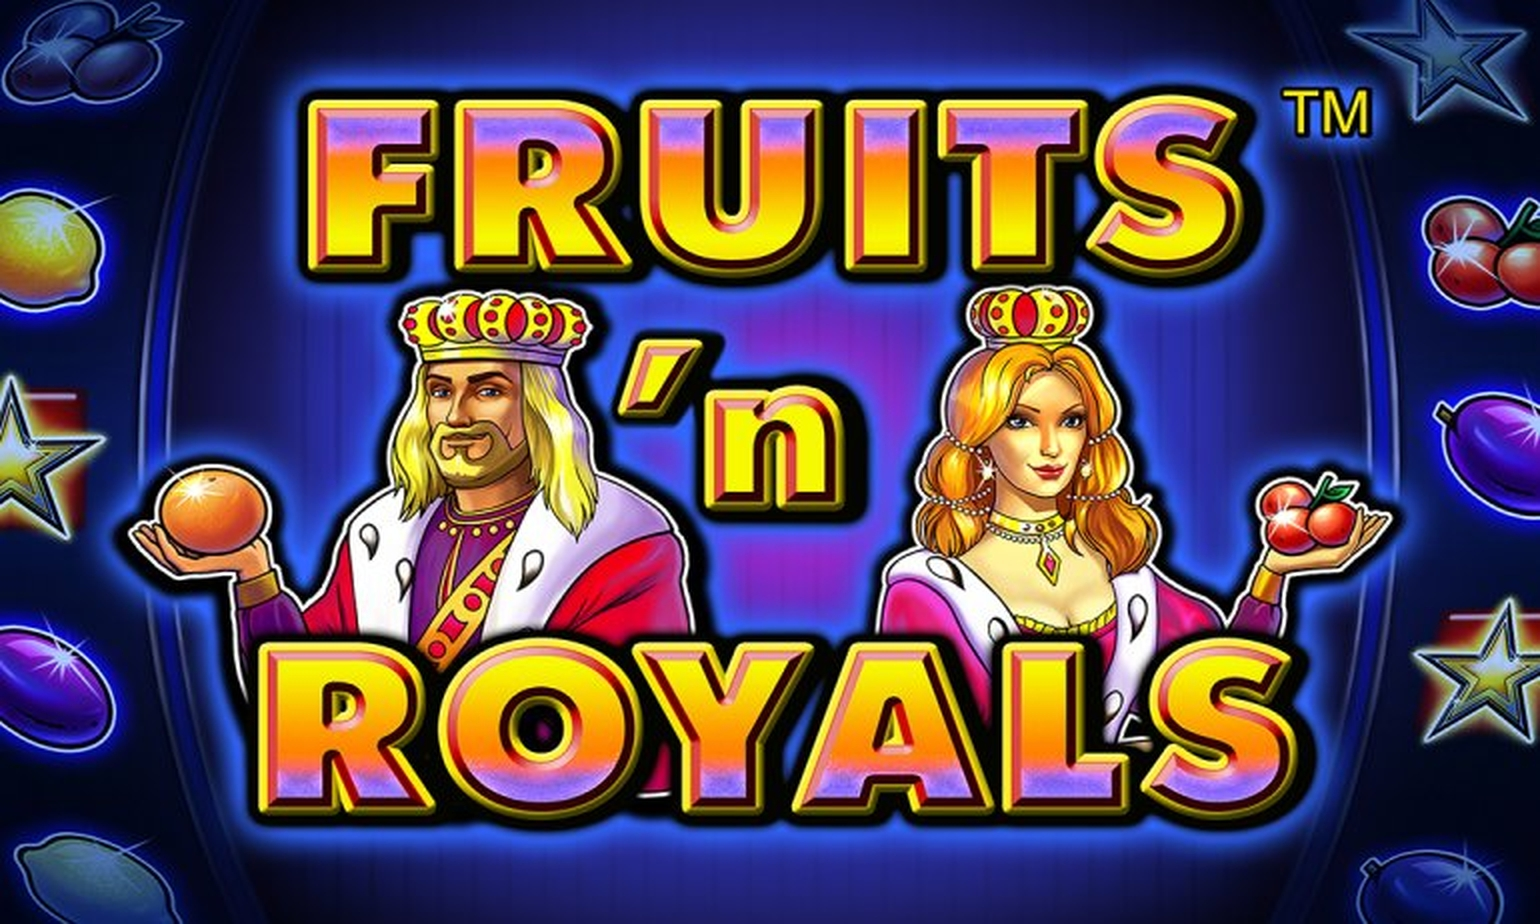 The Fruits'n Royals Deluxe Online Slot Demo Game by Novomatic